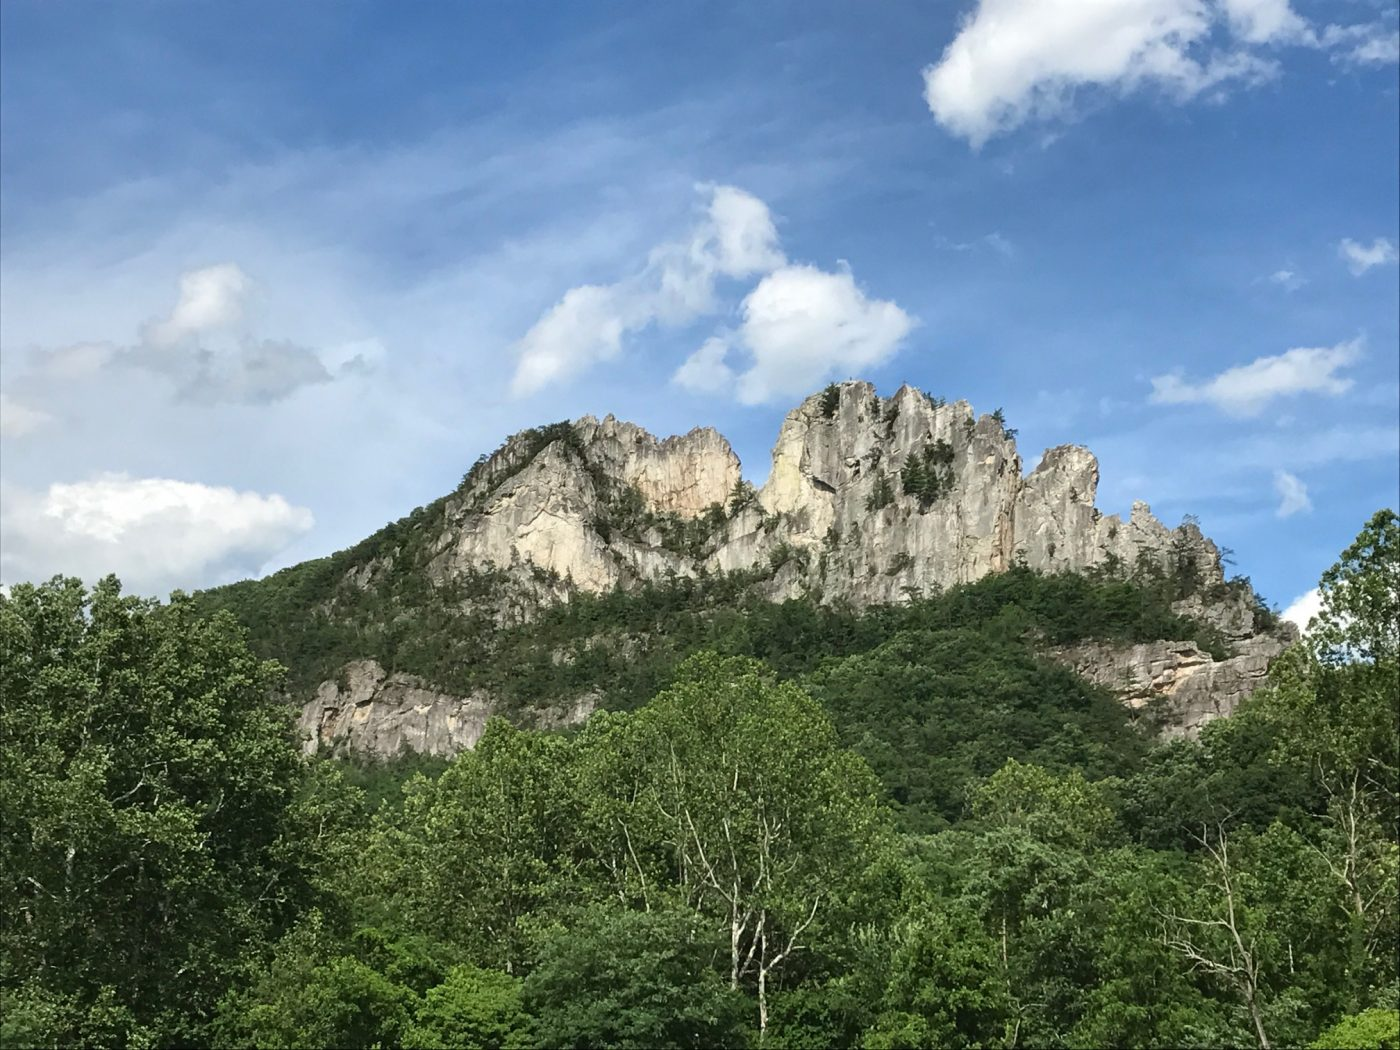 Seneca Rocks with a lot of trees and vegetation